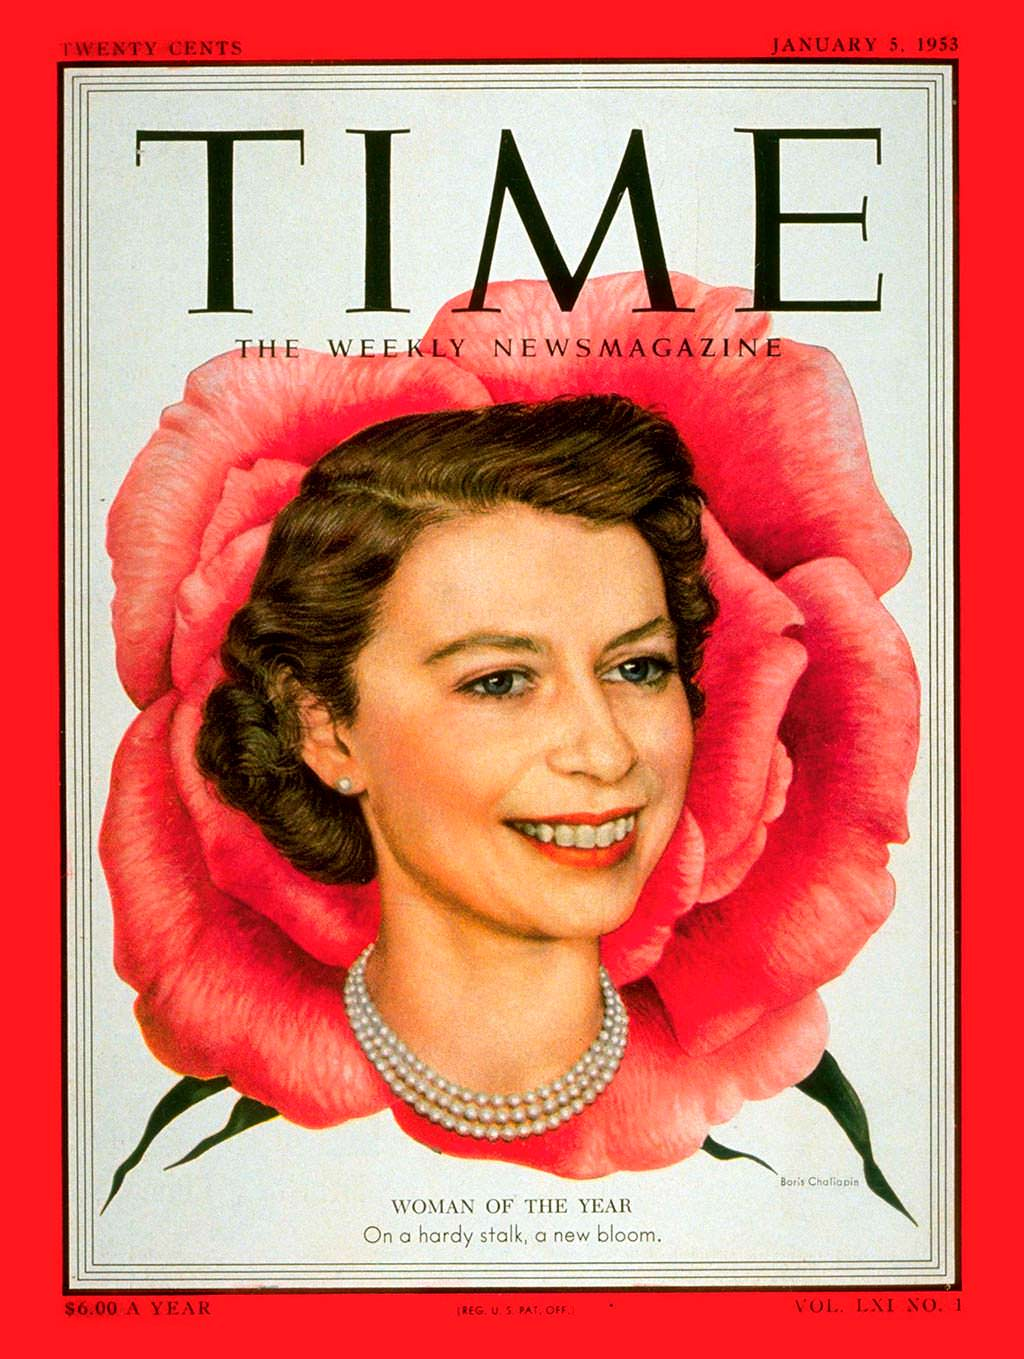 woman of the year 1953 queen elizabeth Queen elizabeth was named time's woman of the year in 1953, shortly before her official coronation in june of that year | january 5, 1953 .